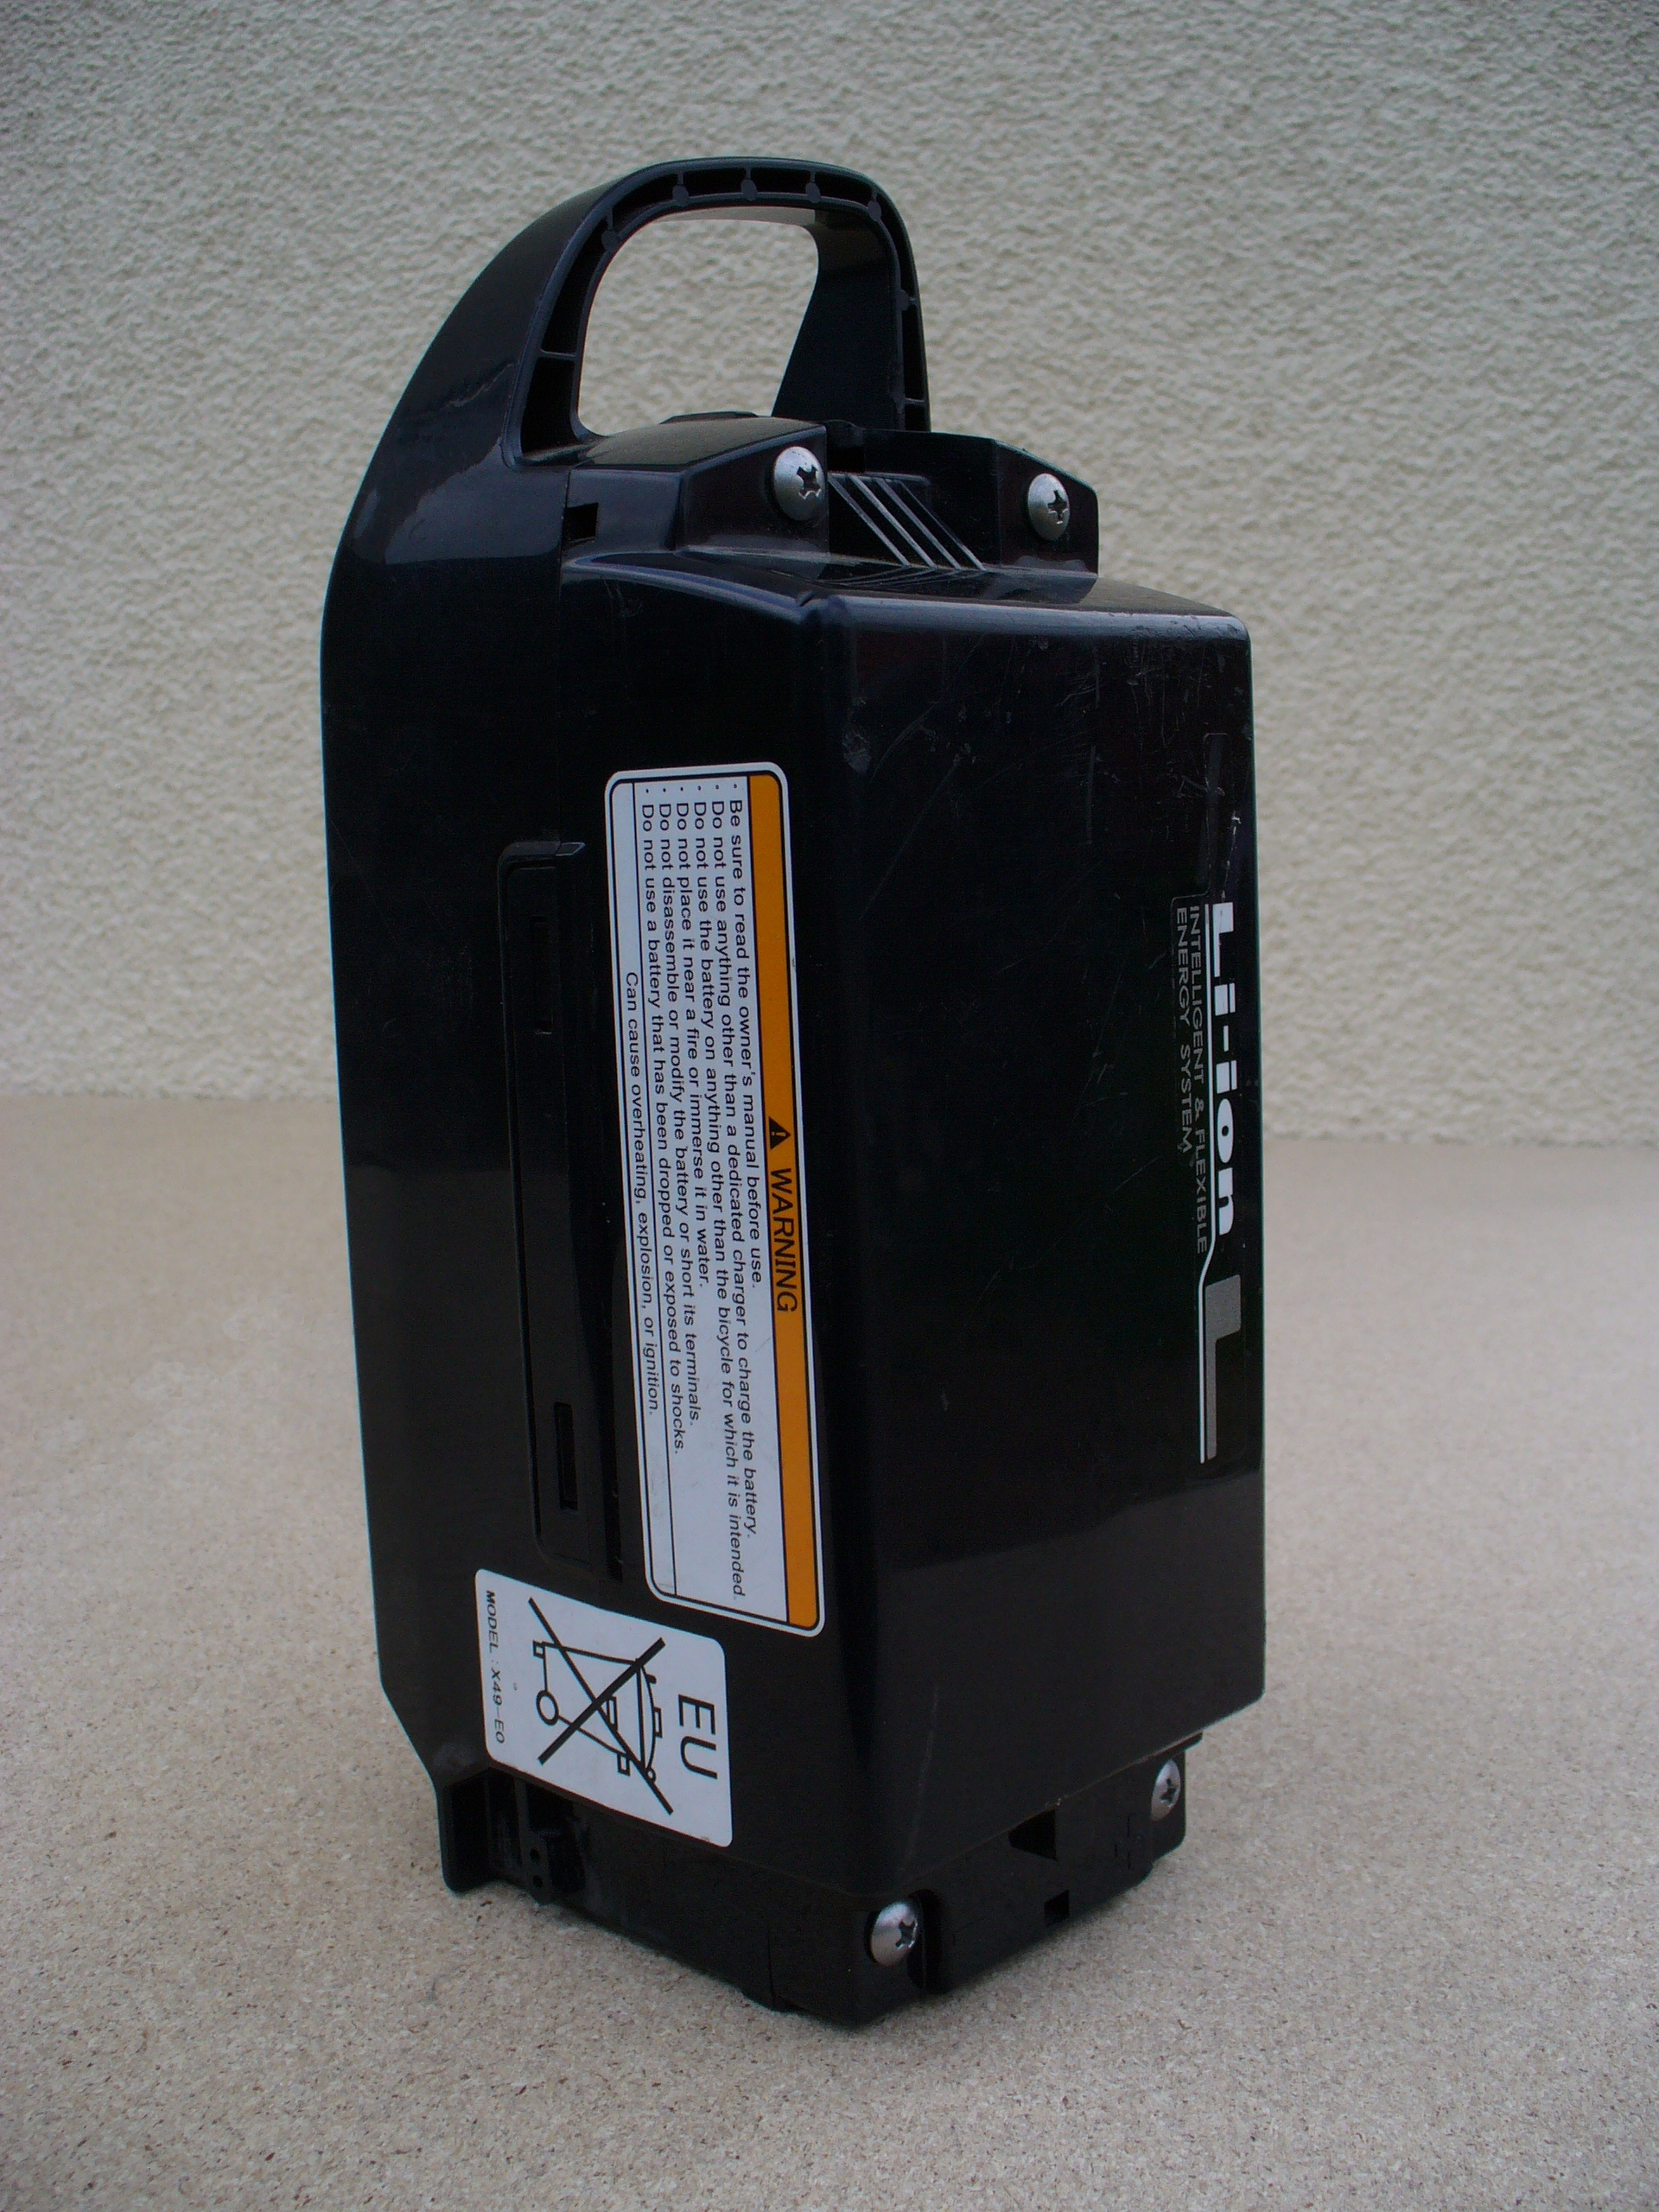 Battery For Yamaha Remote Control Wy